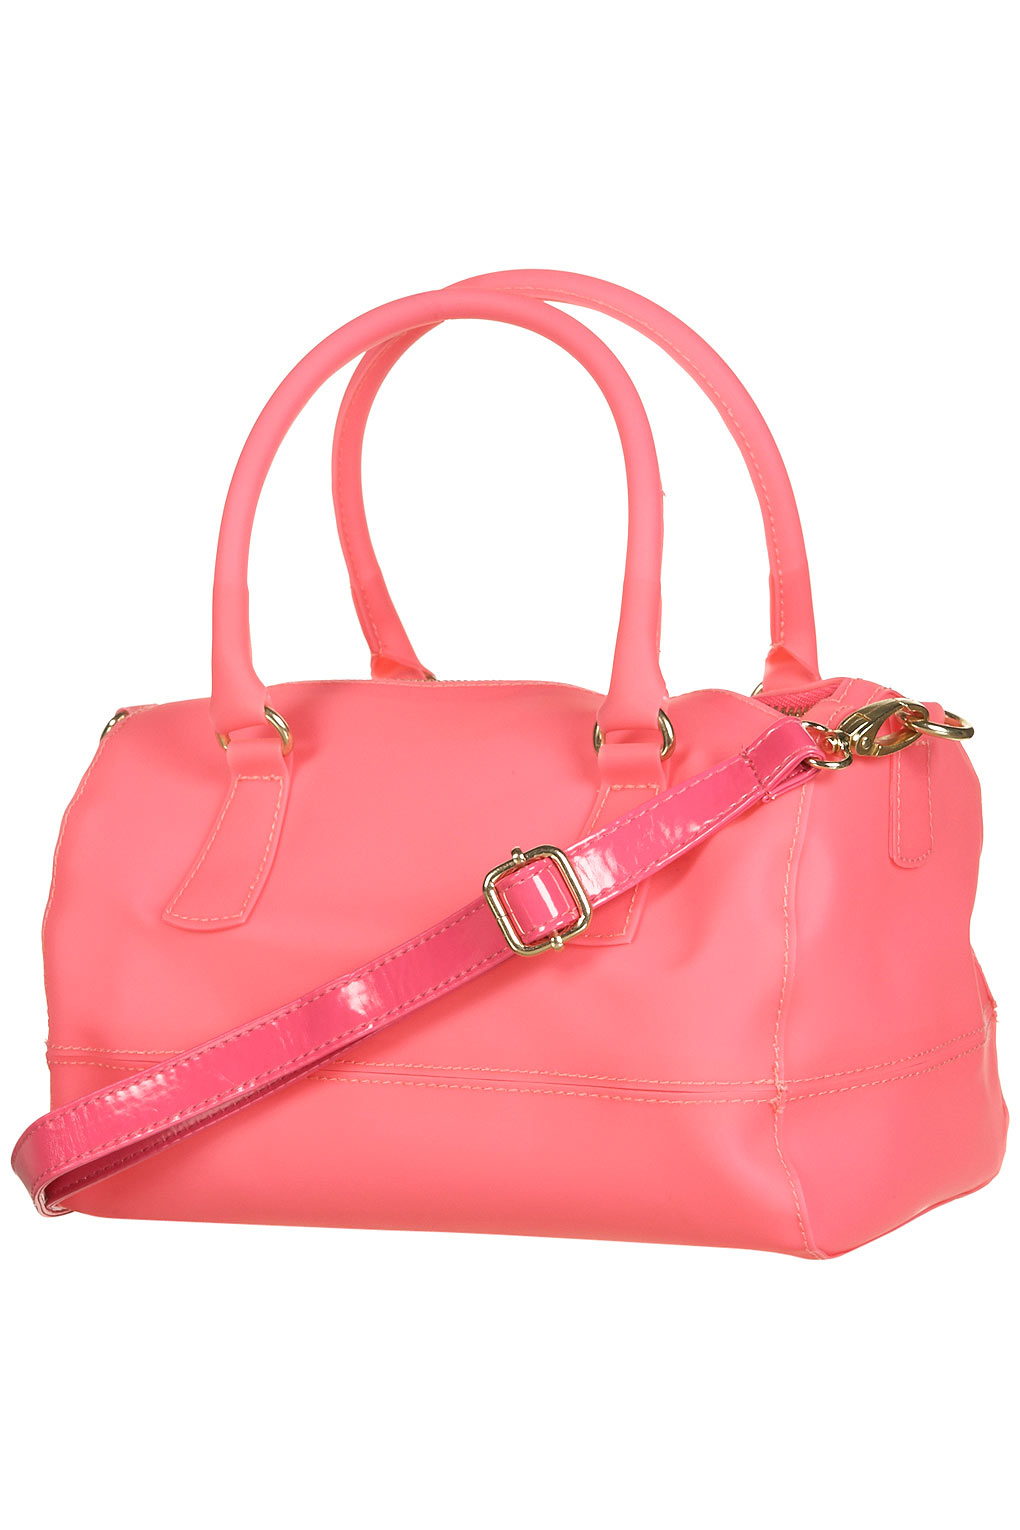 Lyst - Topshop Frosted Plastic Holdall in Pink 142d6cd9271f8